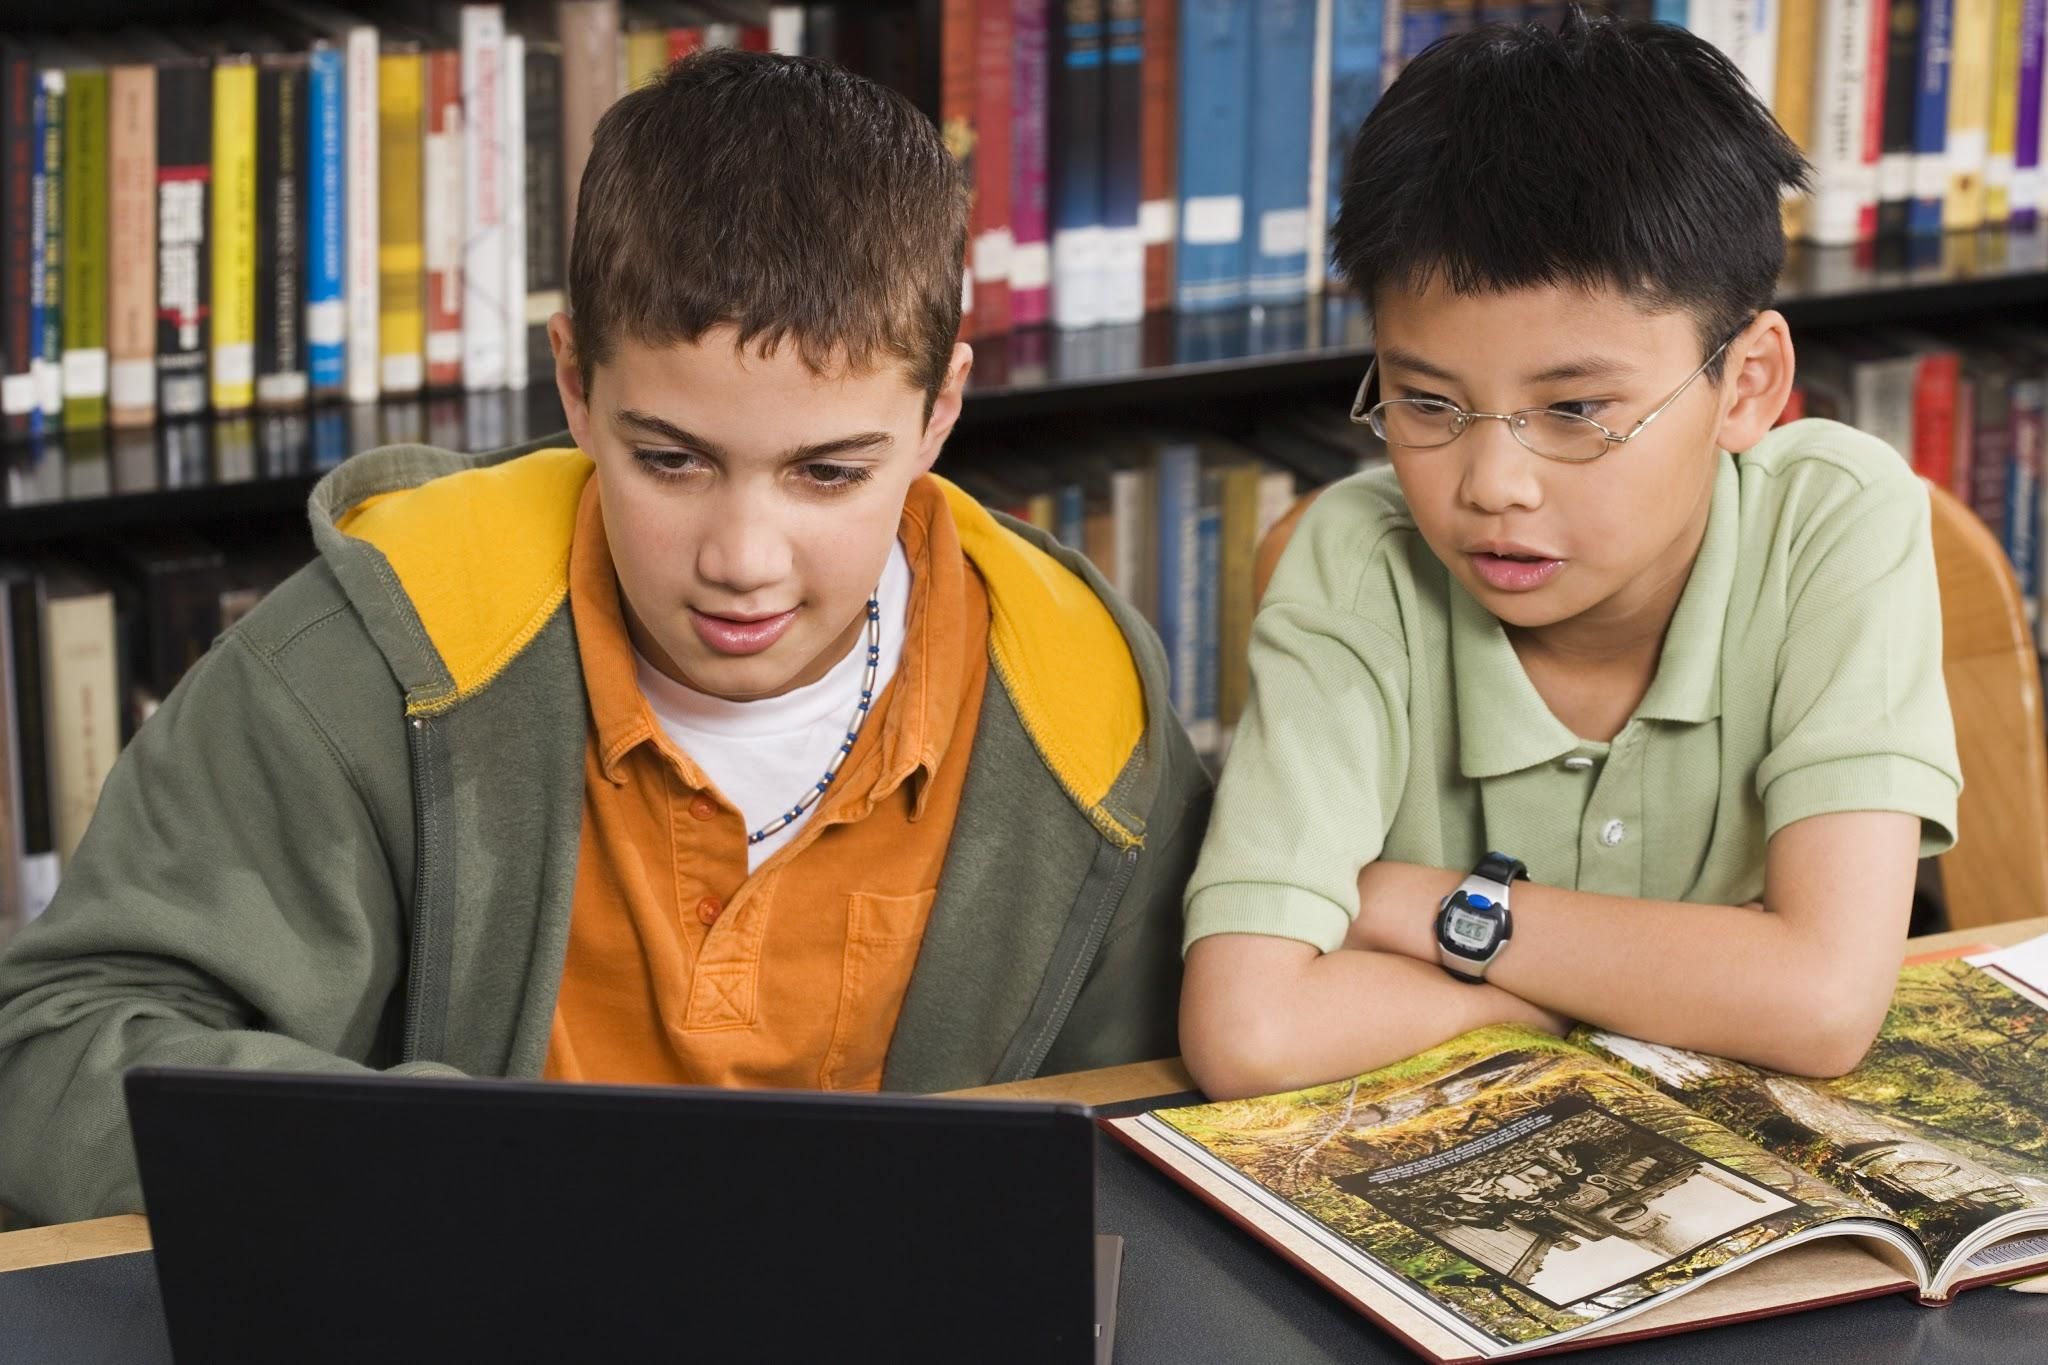 Two elementary school students working on a laptop at a library